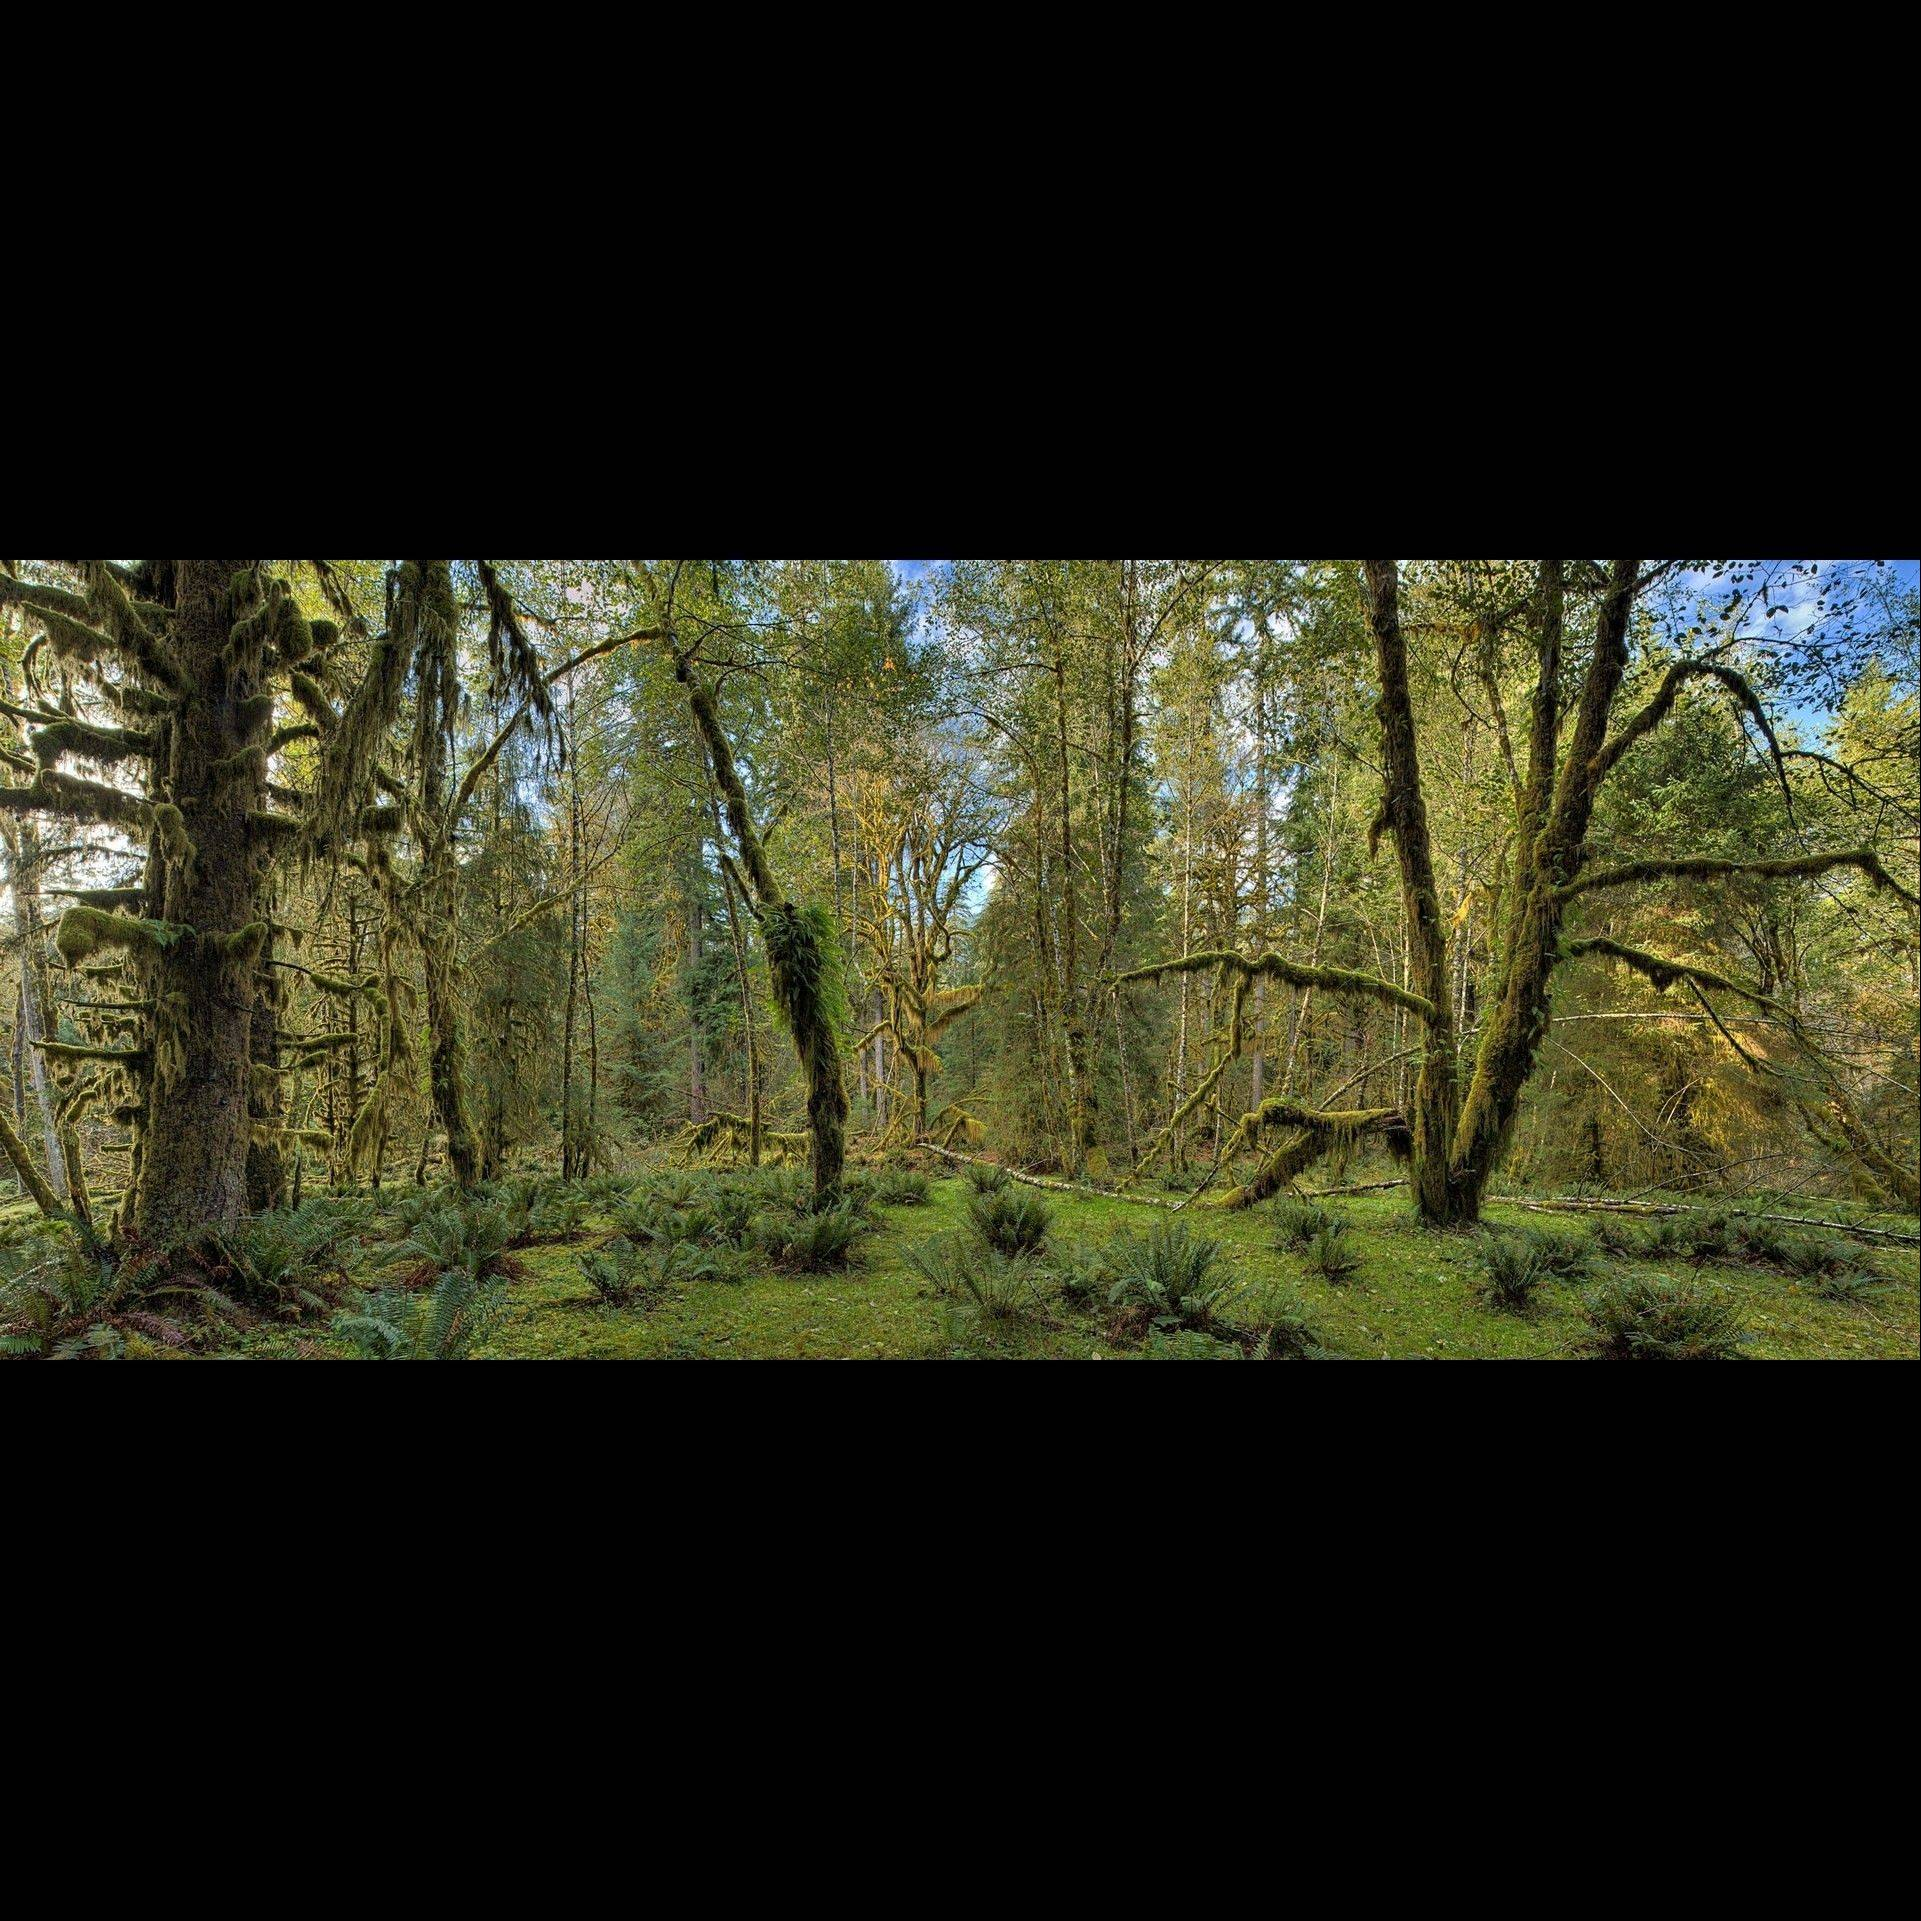 �Olympic Rain Forest� is a work by St. Charles fine art photographer John Rydin. Rydin�s work will be featured at the St. Charles Fine Art Show.